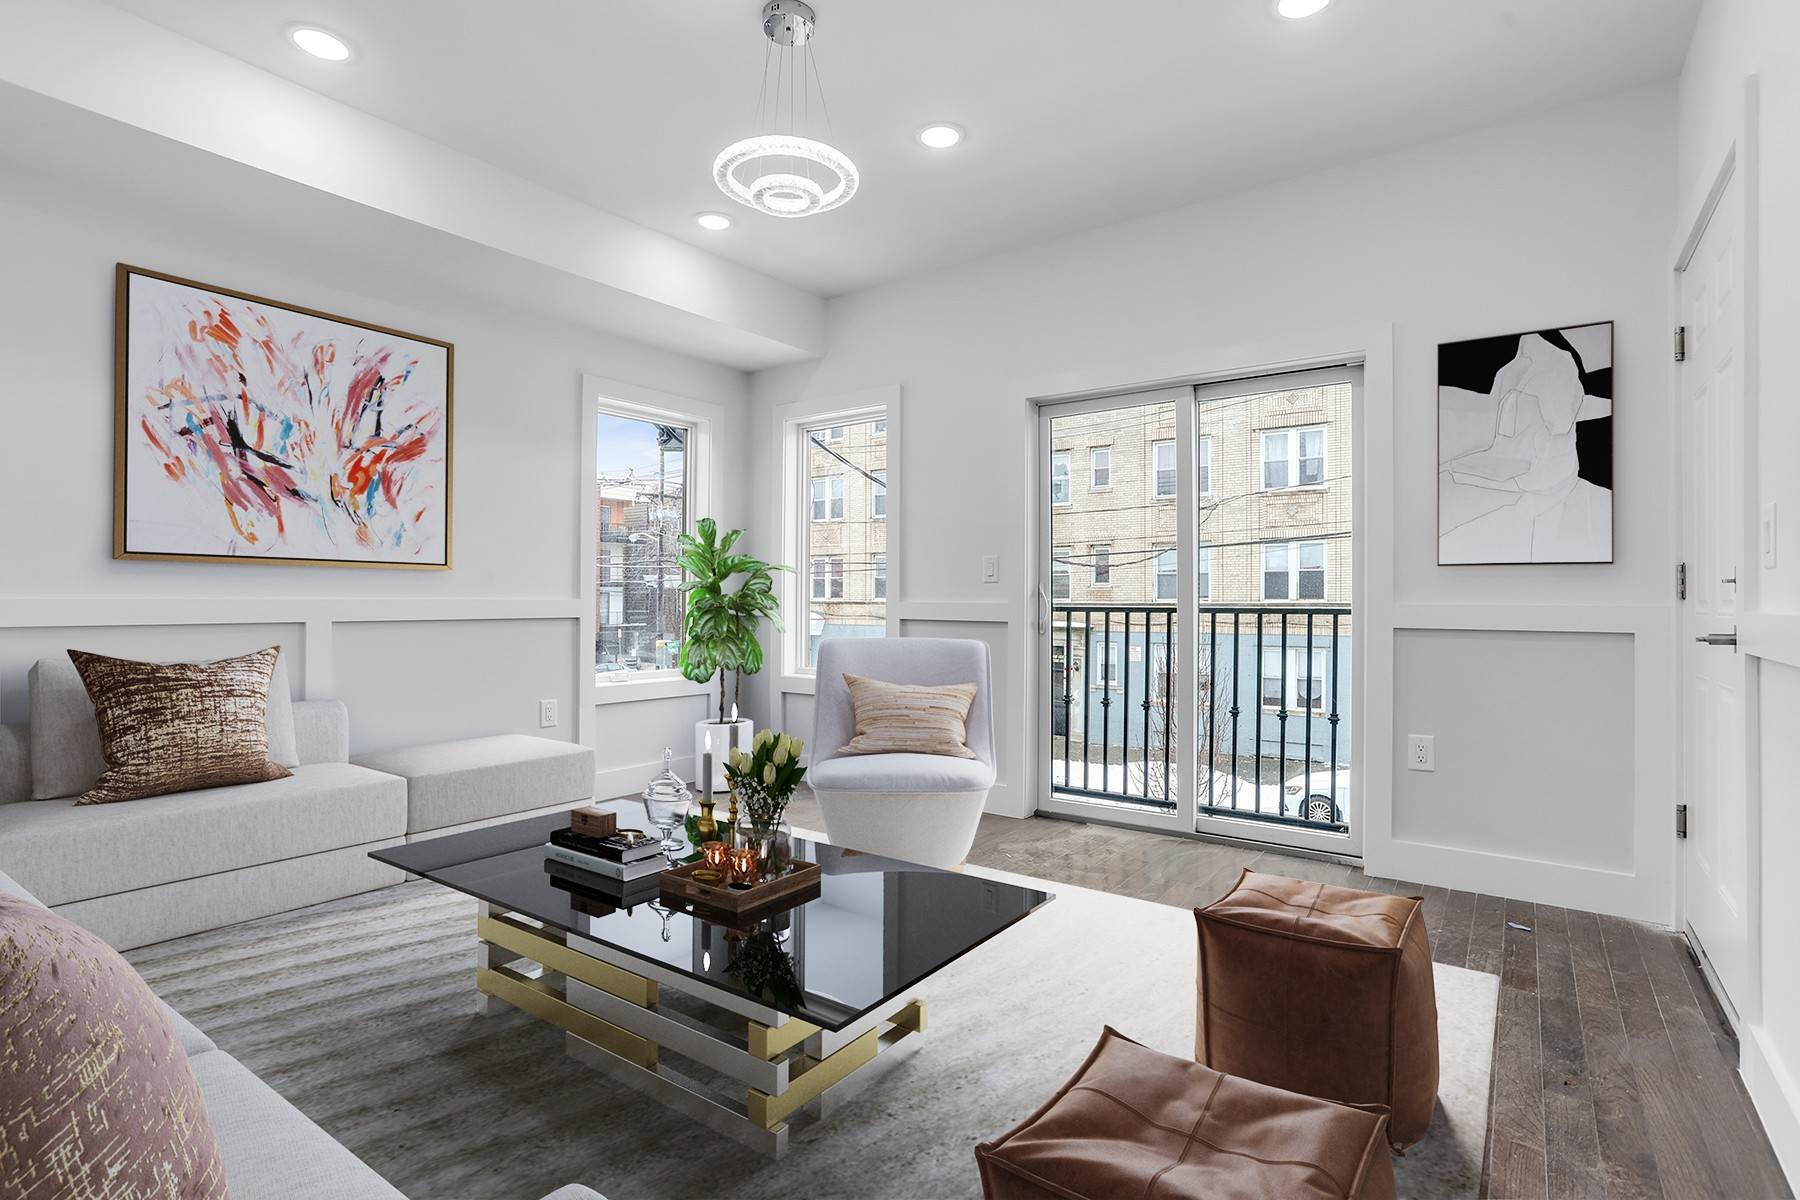 Condominiums for Sale at Welcome home to this brand new constructed 1 bed/ 1 bath condo. 66 Poplar Street, Unit 3 Jersey City, New Jersey 07307 United States